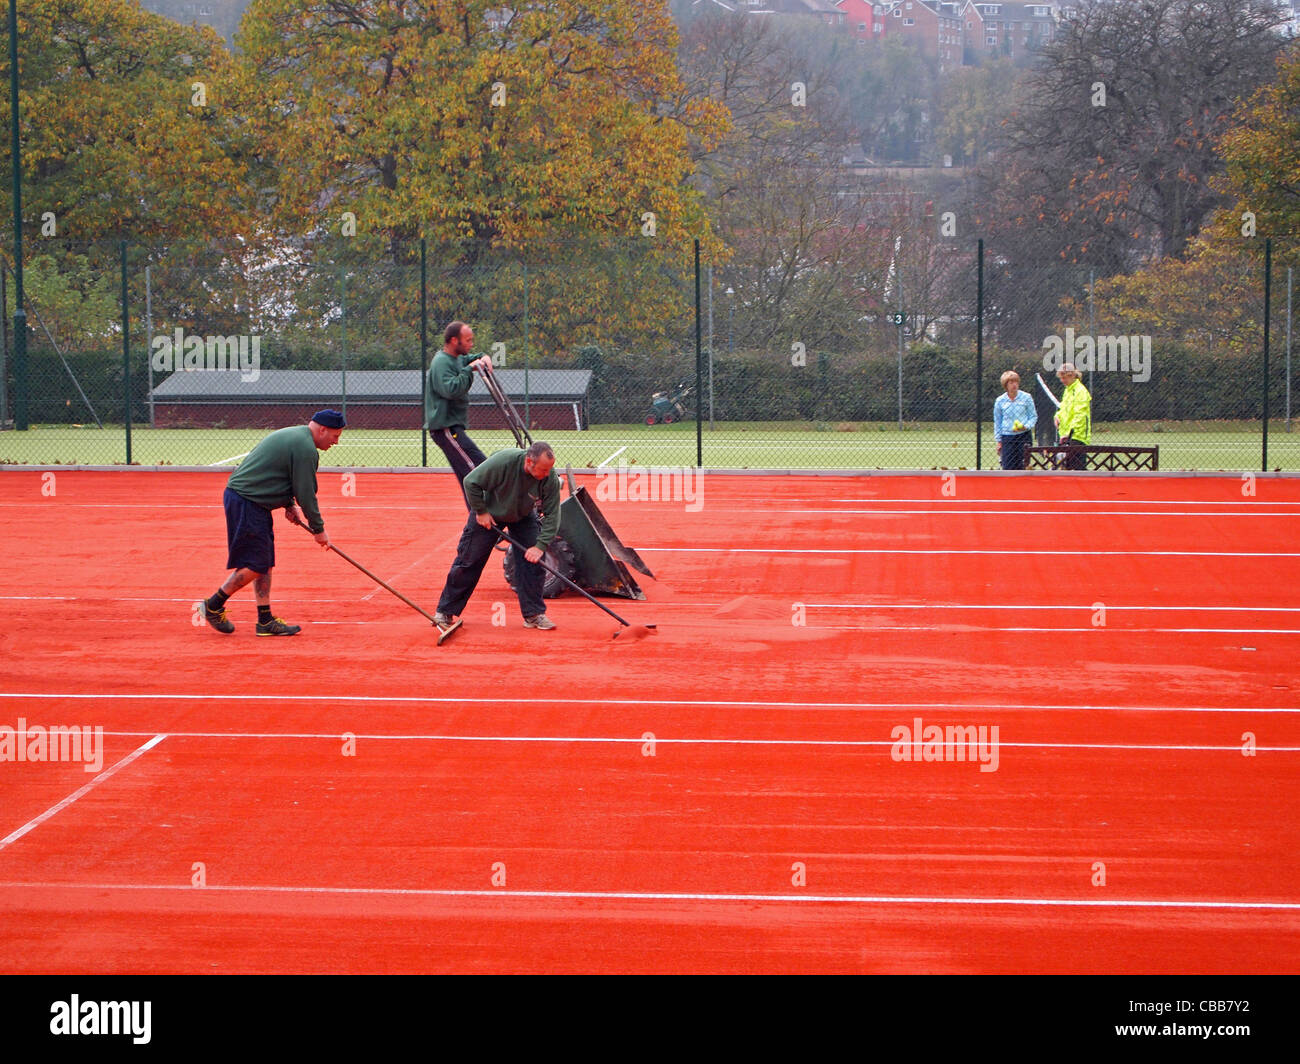 Construction of synthetic clay tennis courts - pouring and levelling the clay top surface on the stability mat - Stock Image